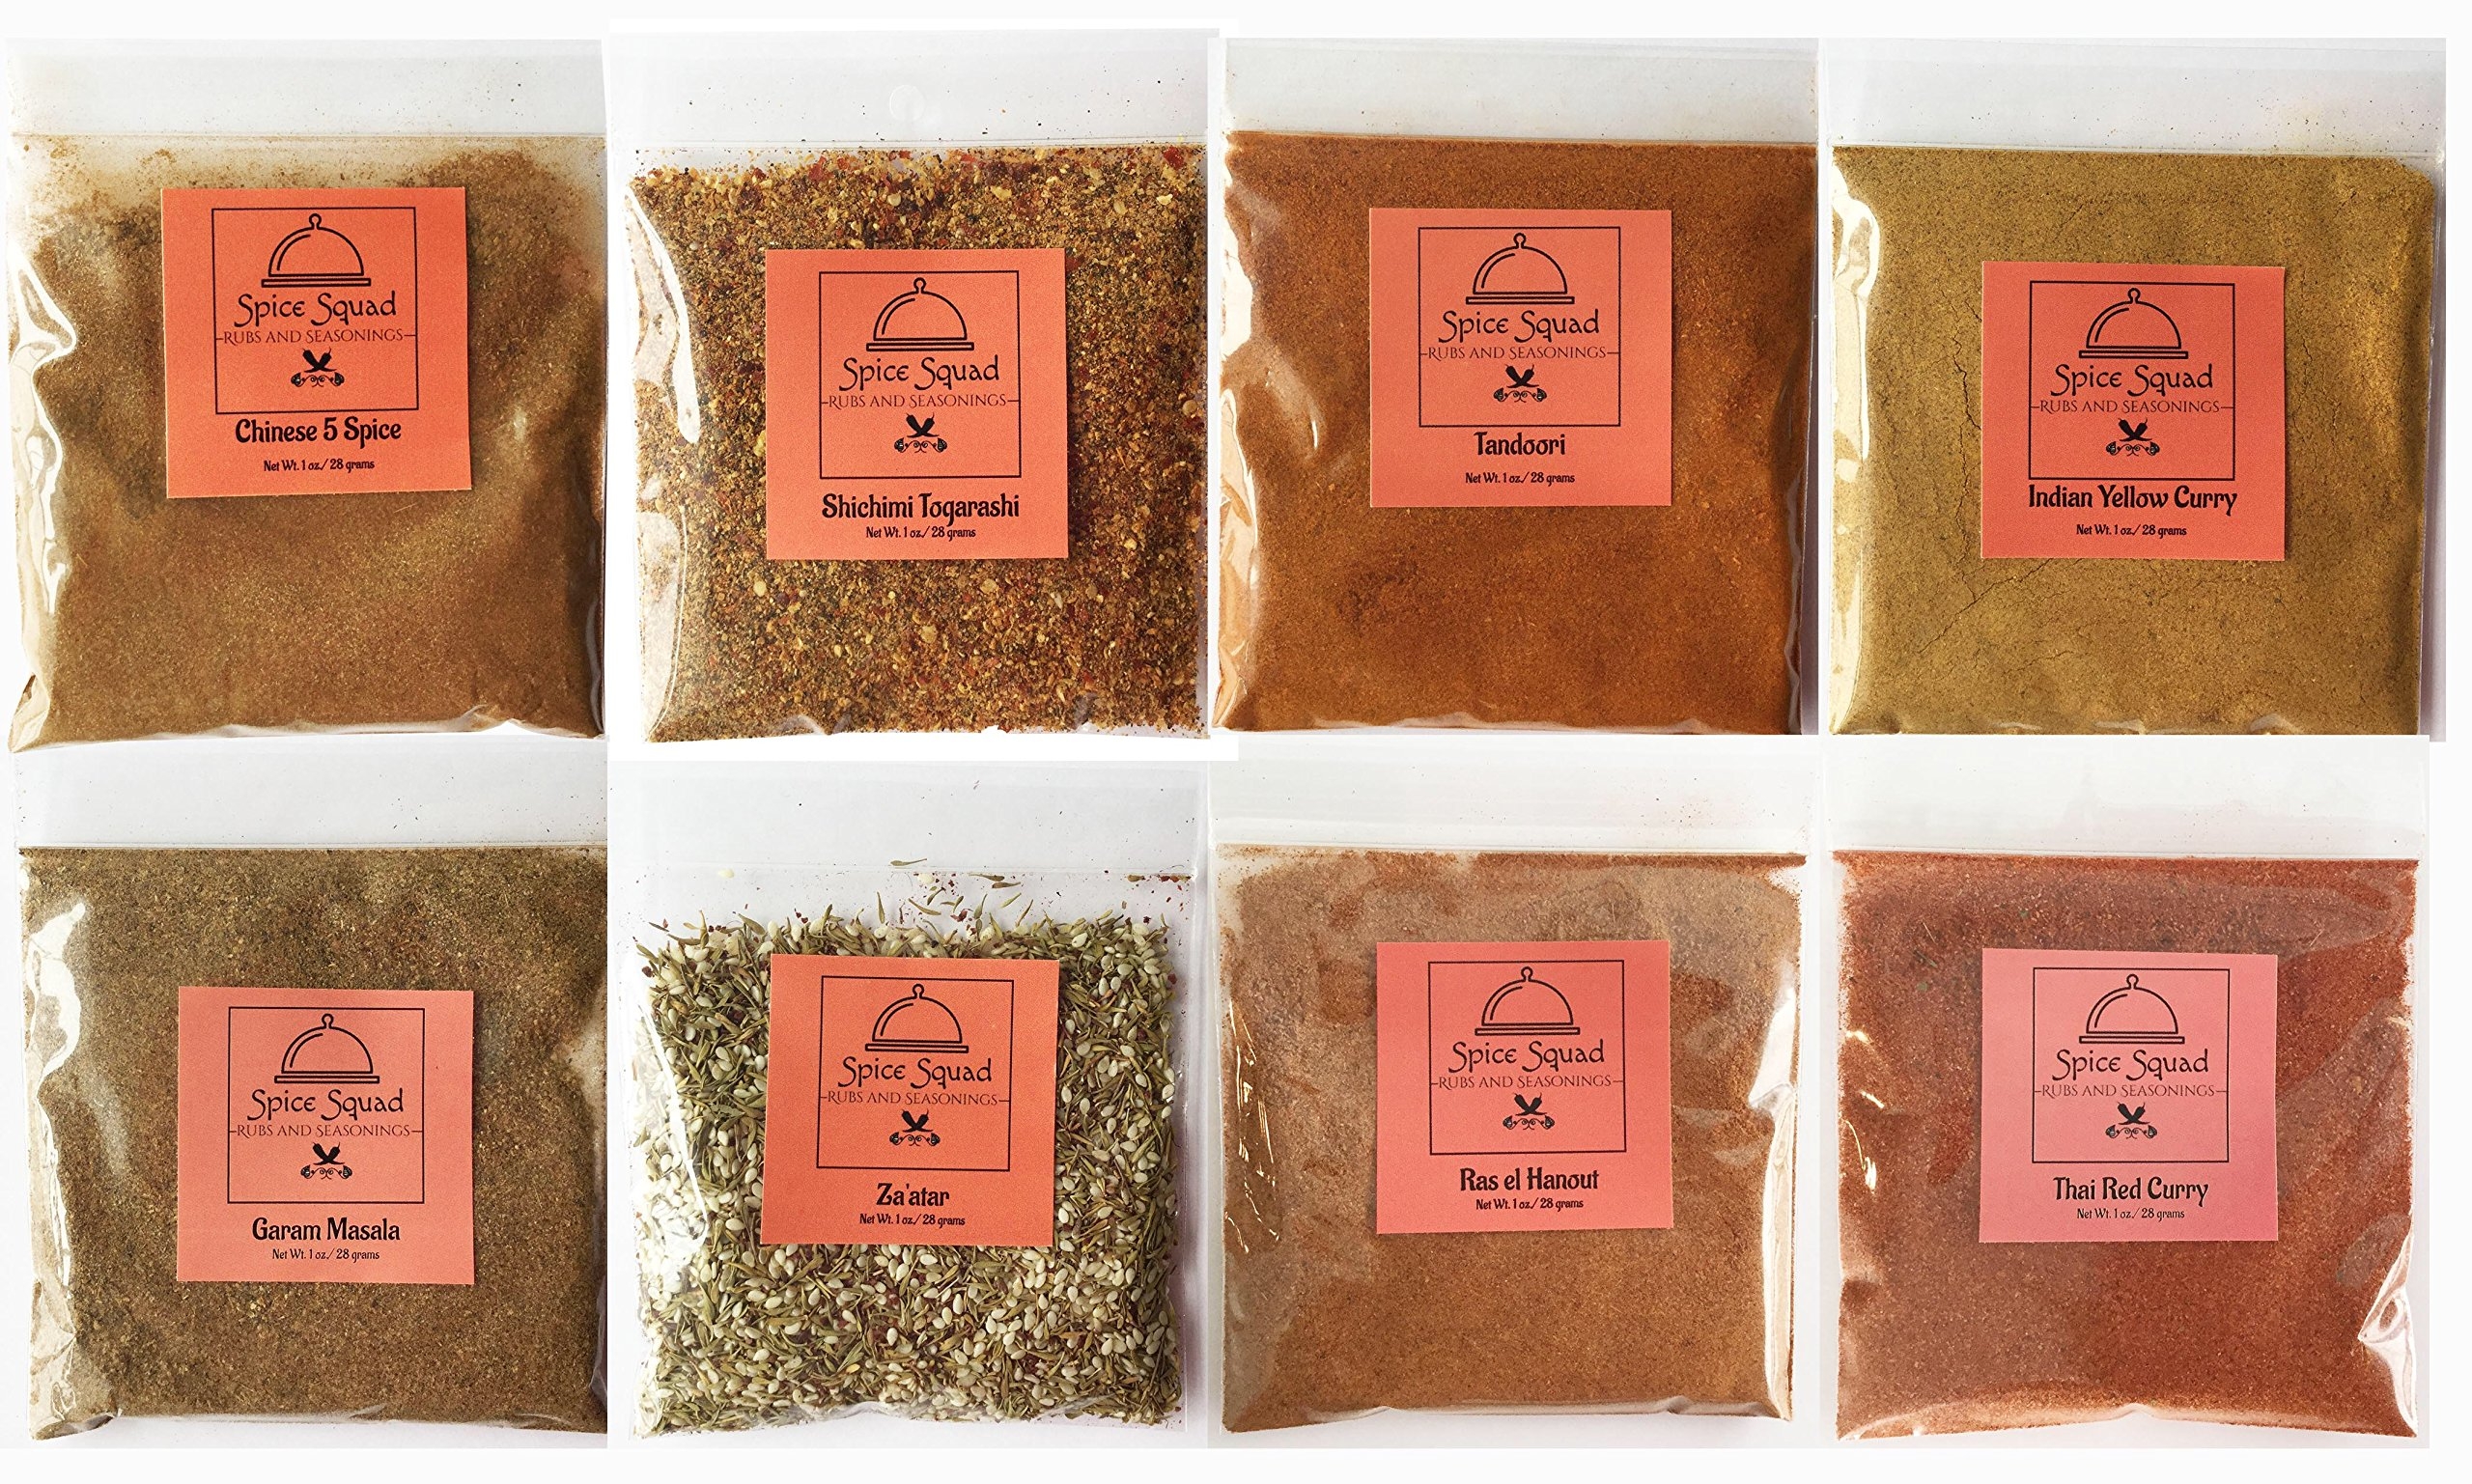 Spice Squad ~ International 8 Variety Sampler Gift Set | Thai Red Curry, Ras el Hanout, Indian Yellow Curry, Za'atar, Shichimi Togarashi, Chinese 5 Spice & Garam Masala by Spice Squad (Image #1)